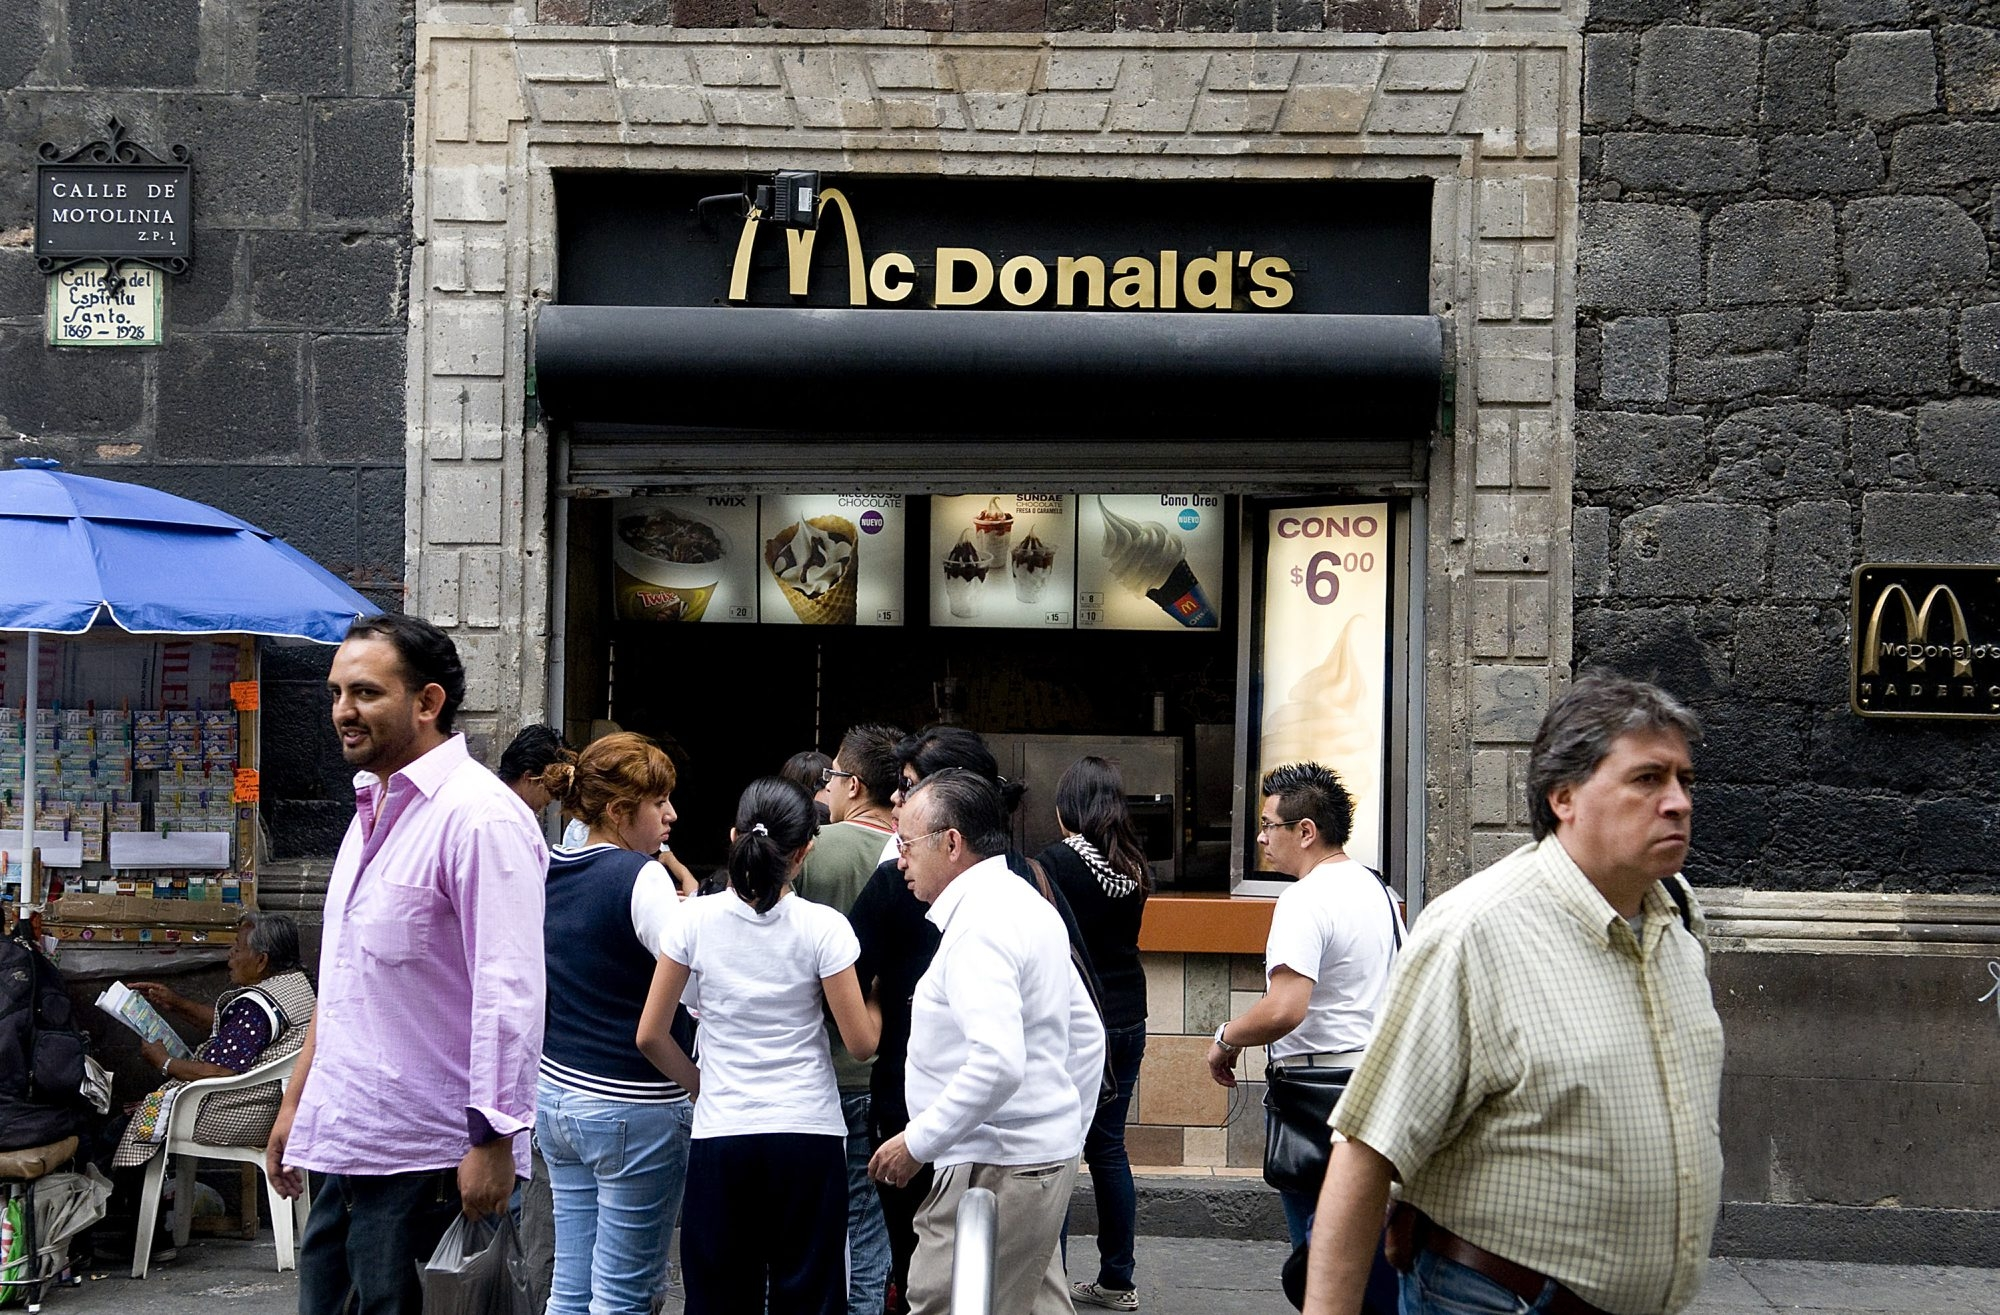 Pedestrians pass in front of a McDonald's restaurant in Mexico City, Mexico. Fast food restaurants have expanded around the globe, and residents' waistlines have expanded as well.